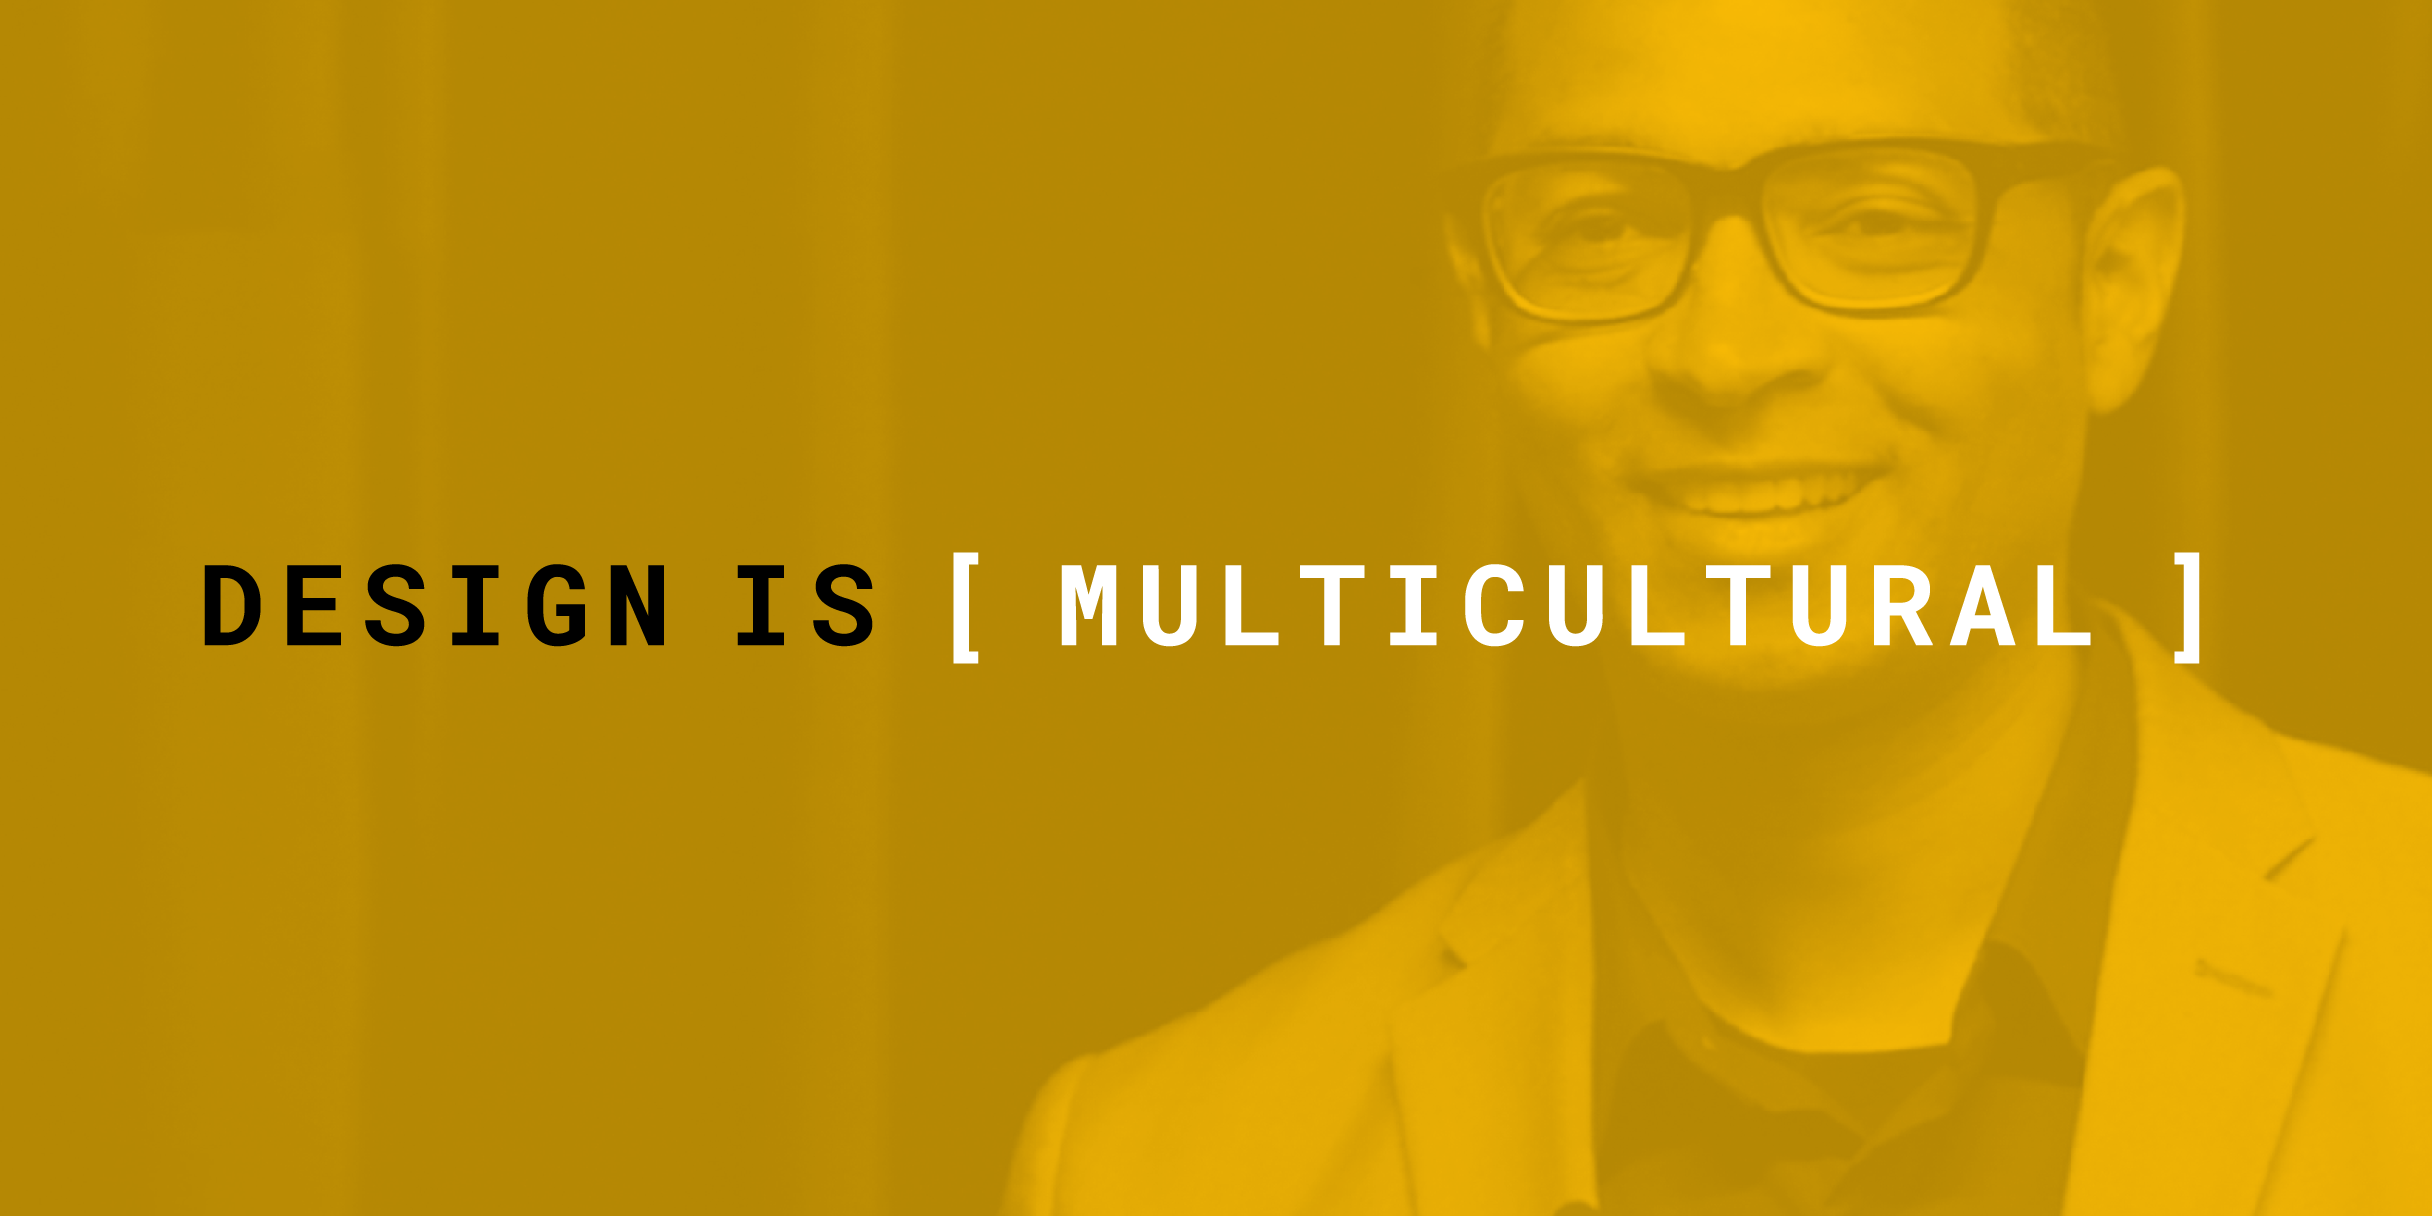 design_is_multicultural_2x1